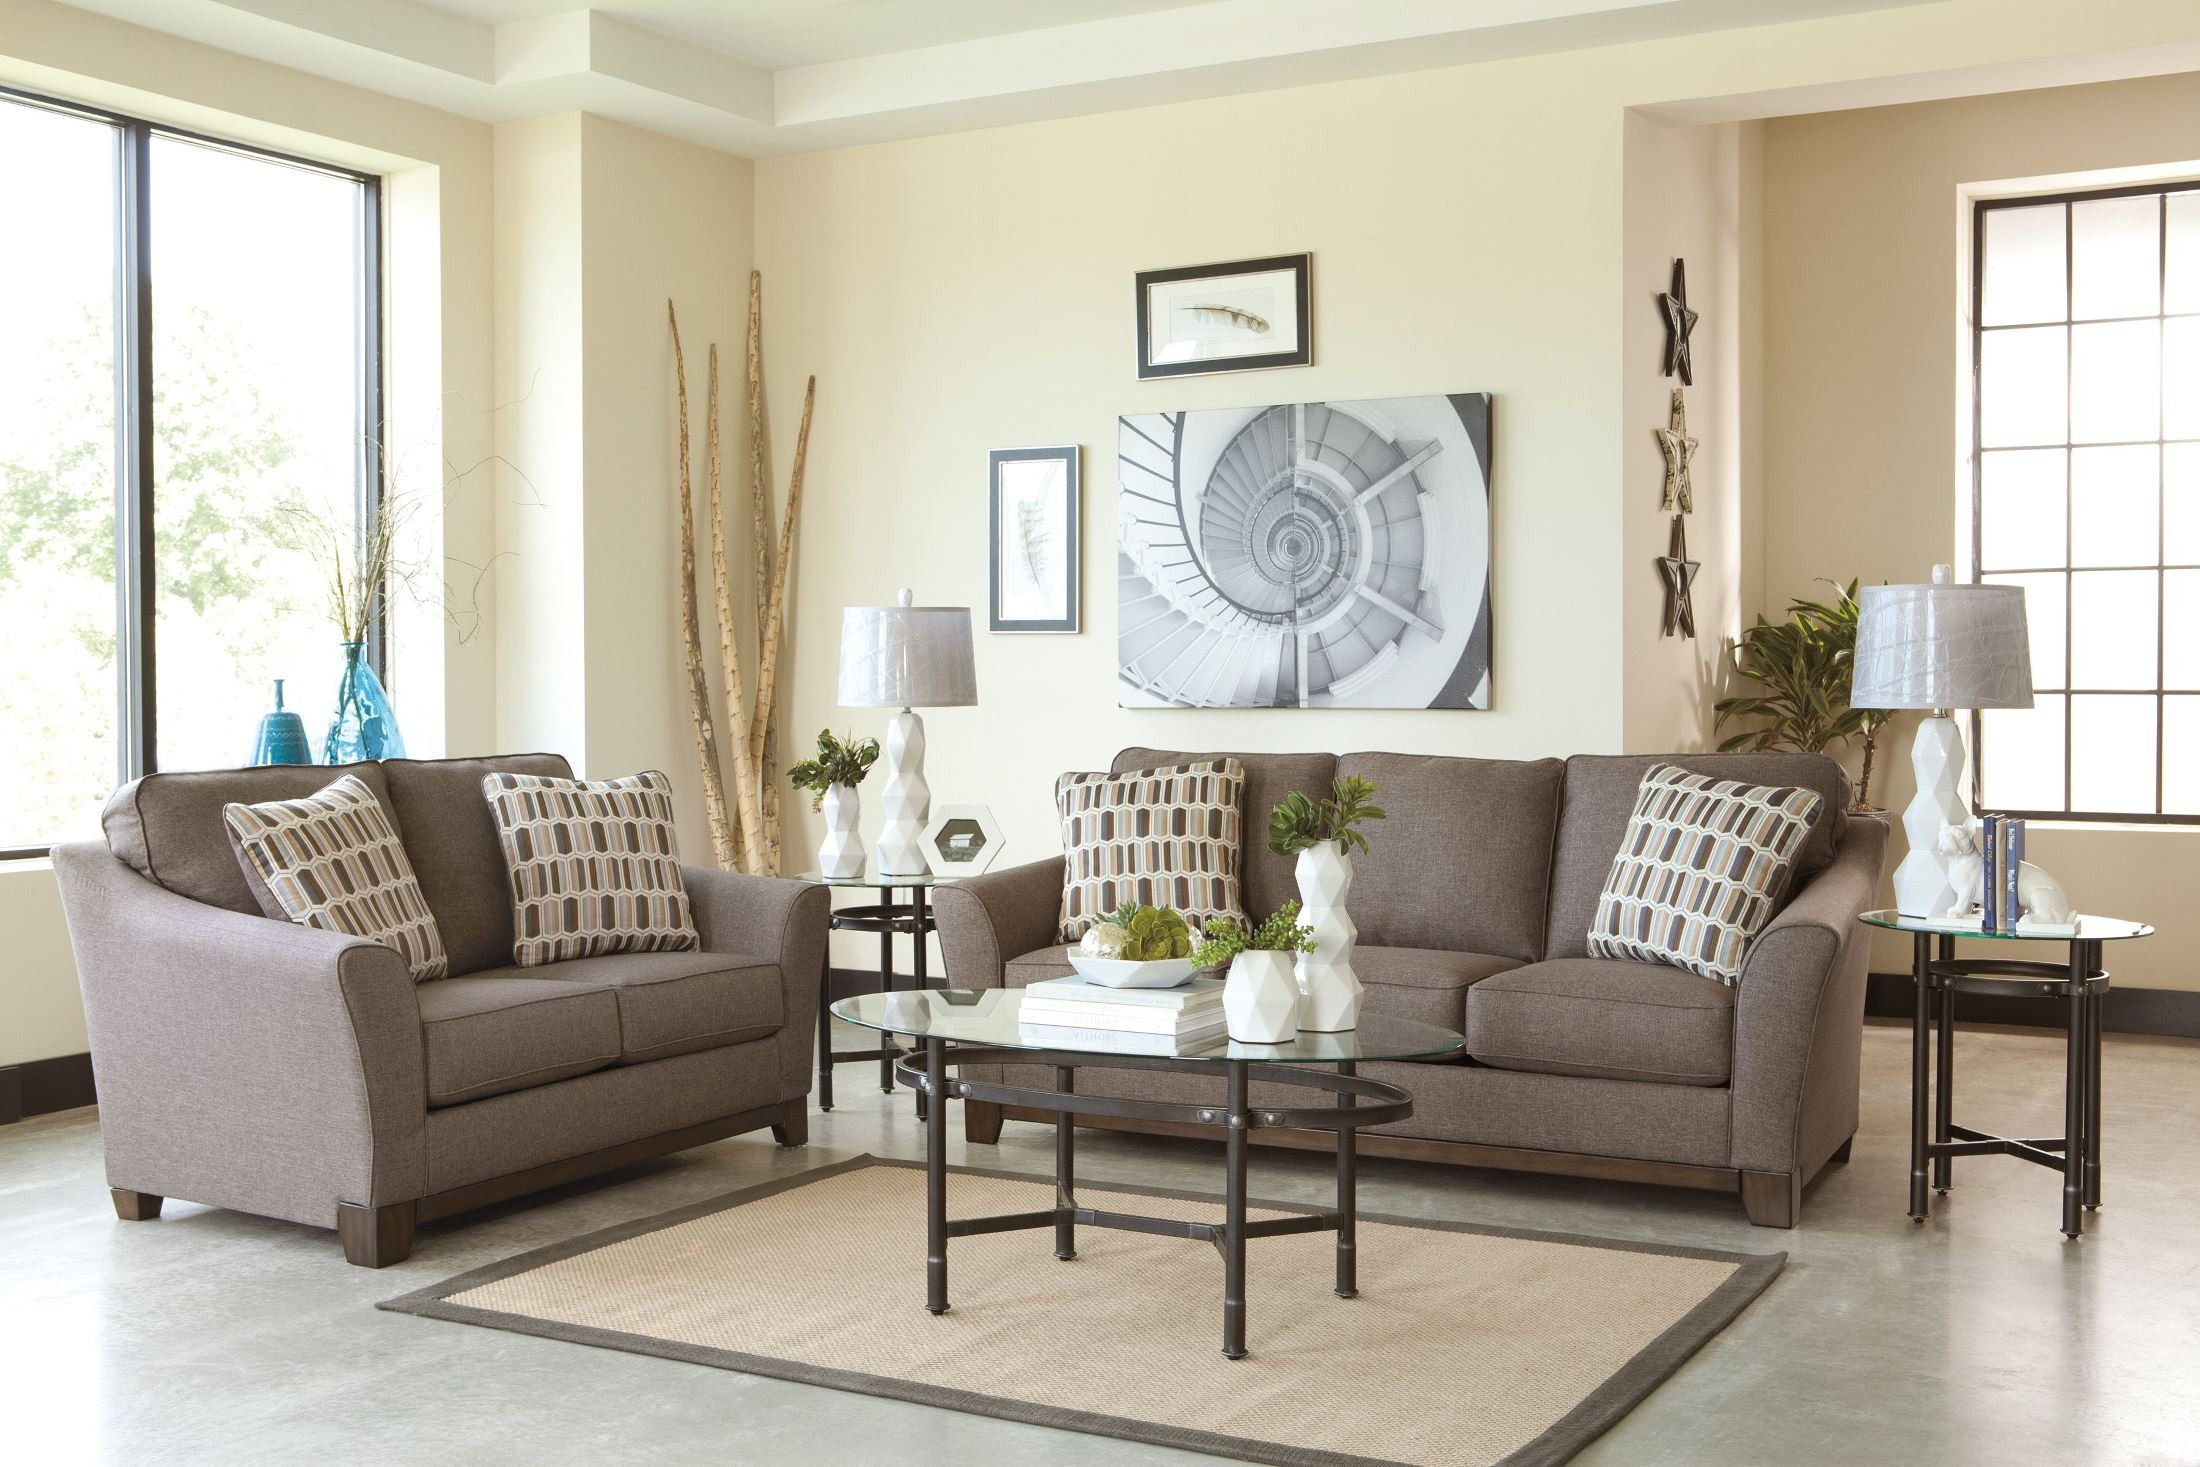 Janley Slate Living Room Set from Ashley (43804-38-35) | Coleman ...